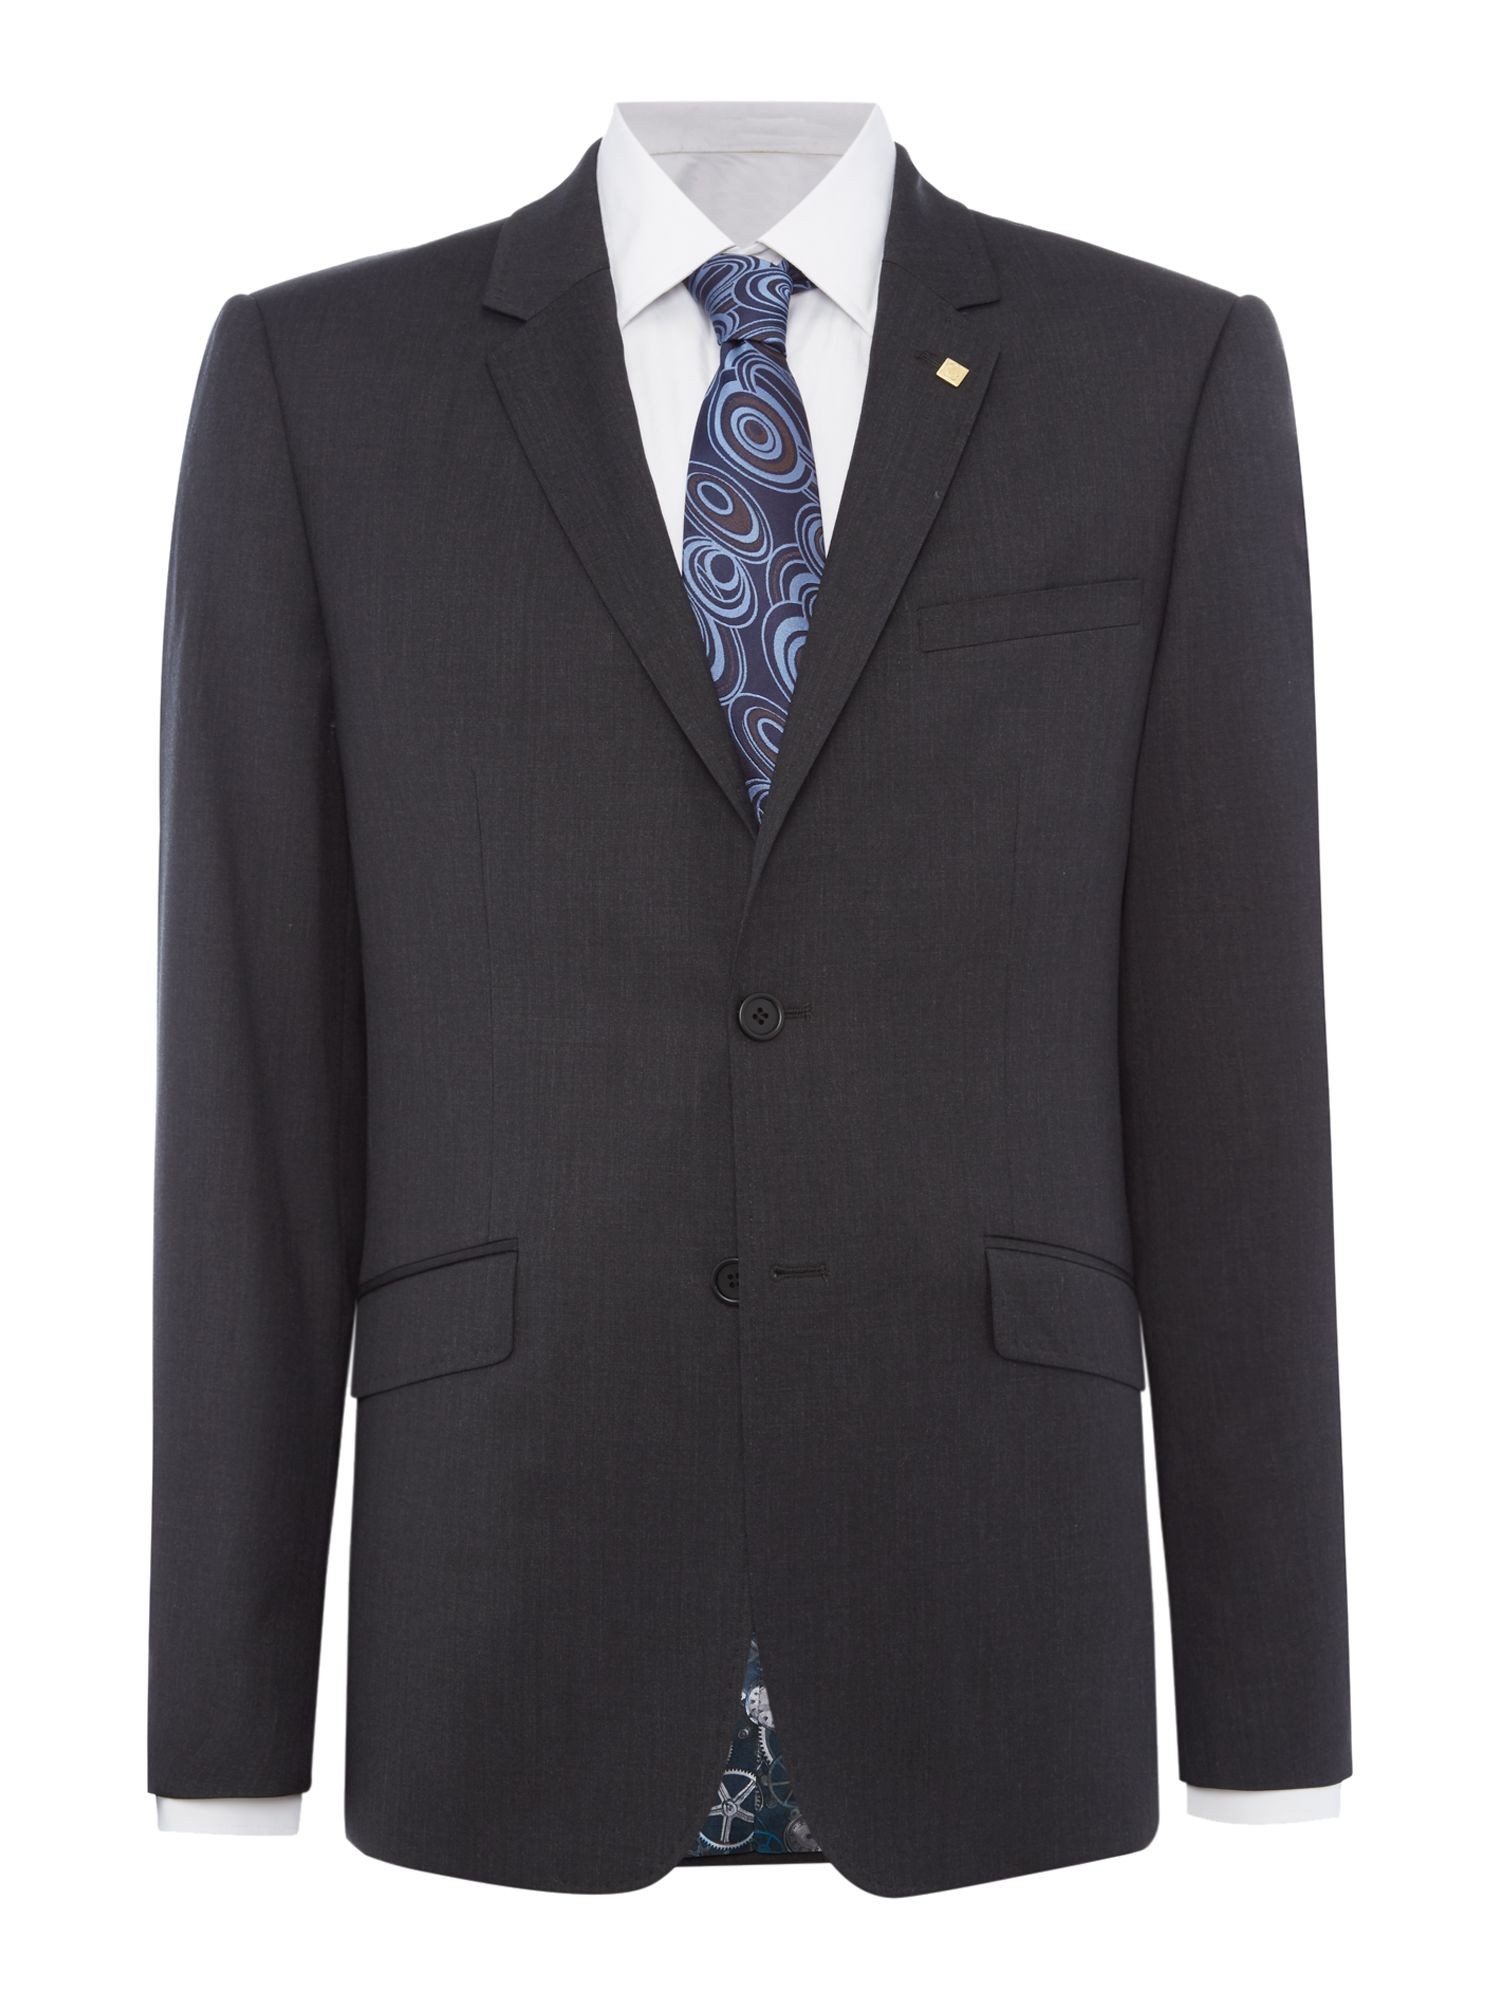 Mens Ted Baker Timeless Slim Fit Suit Jacket Charcoal